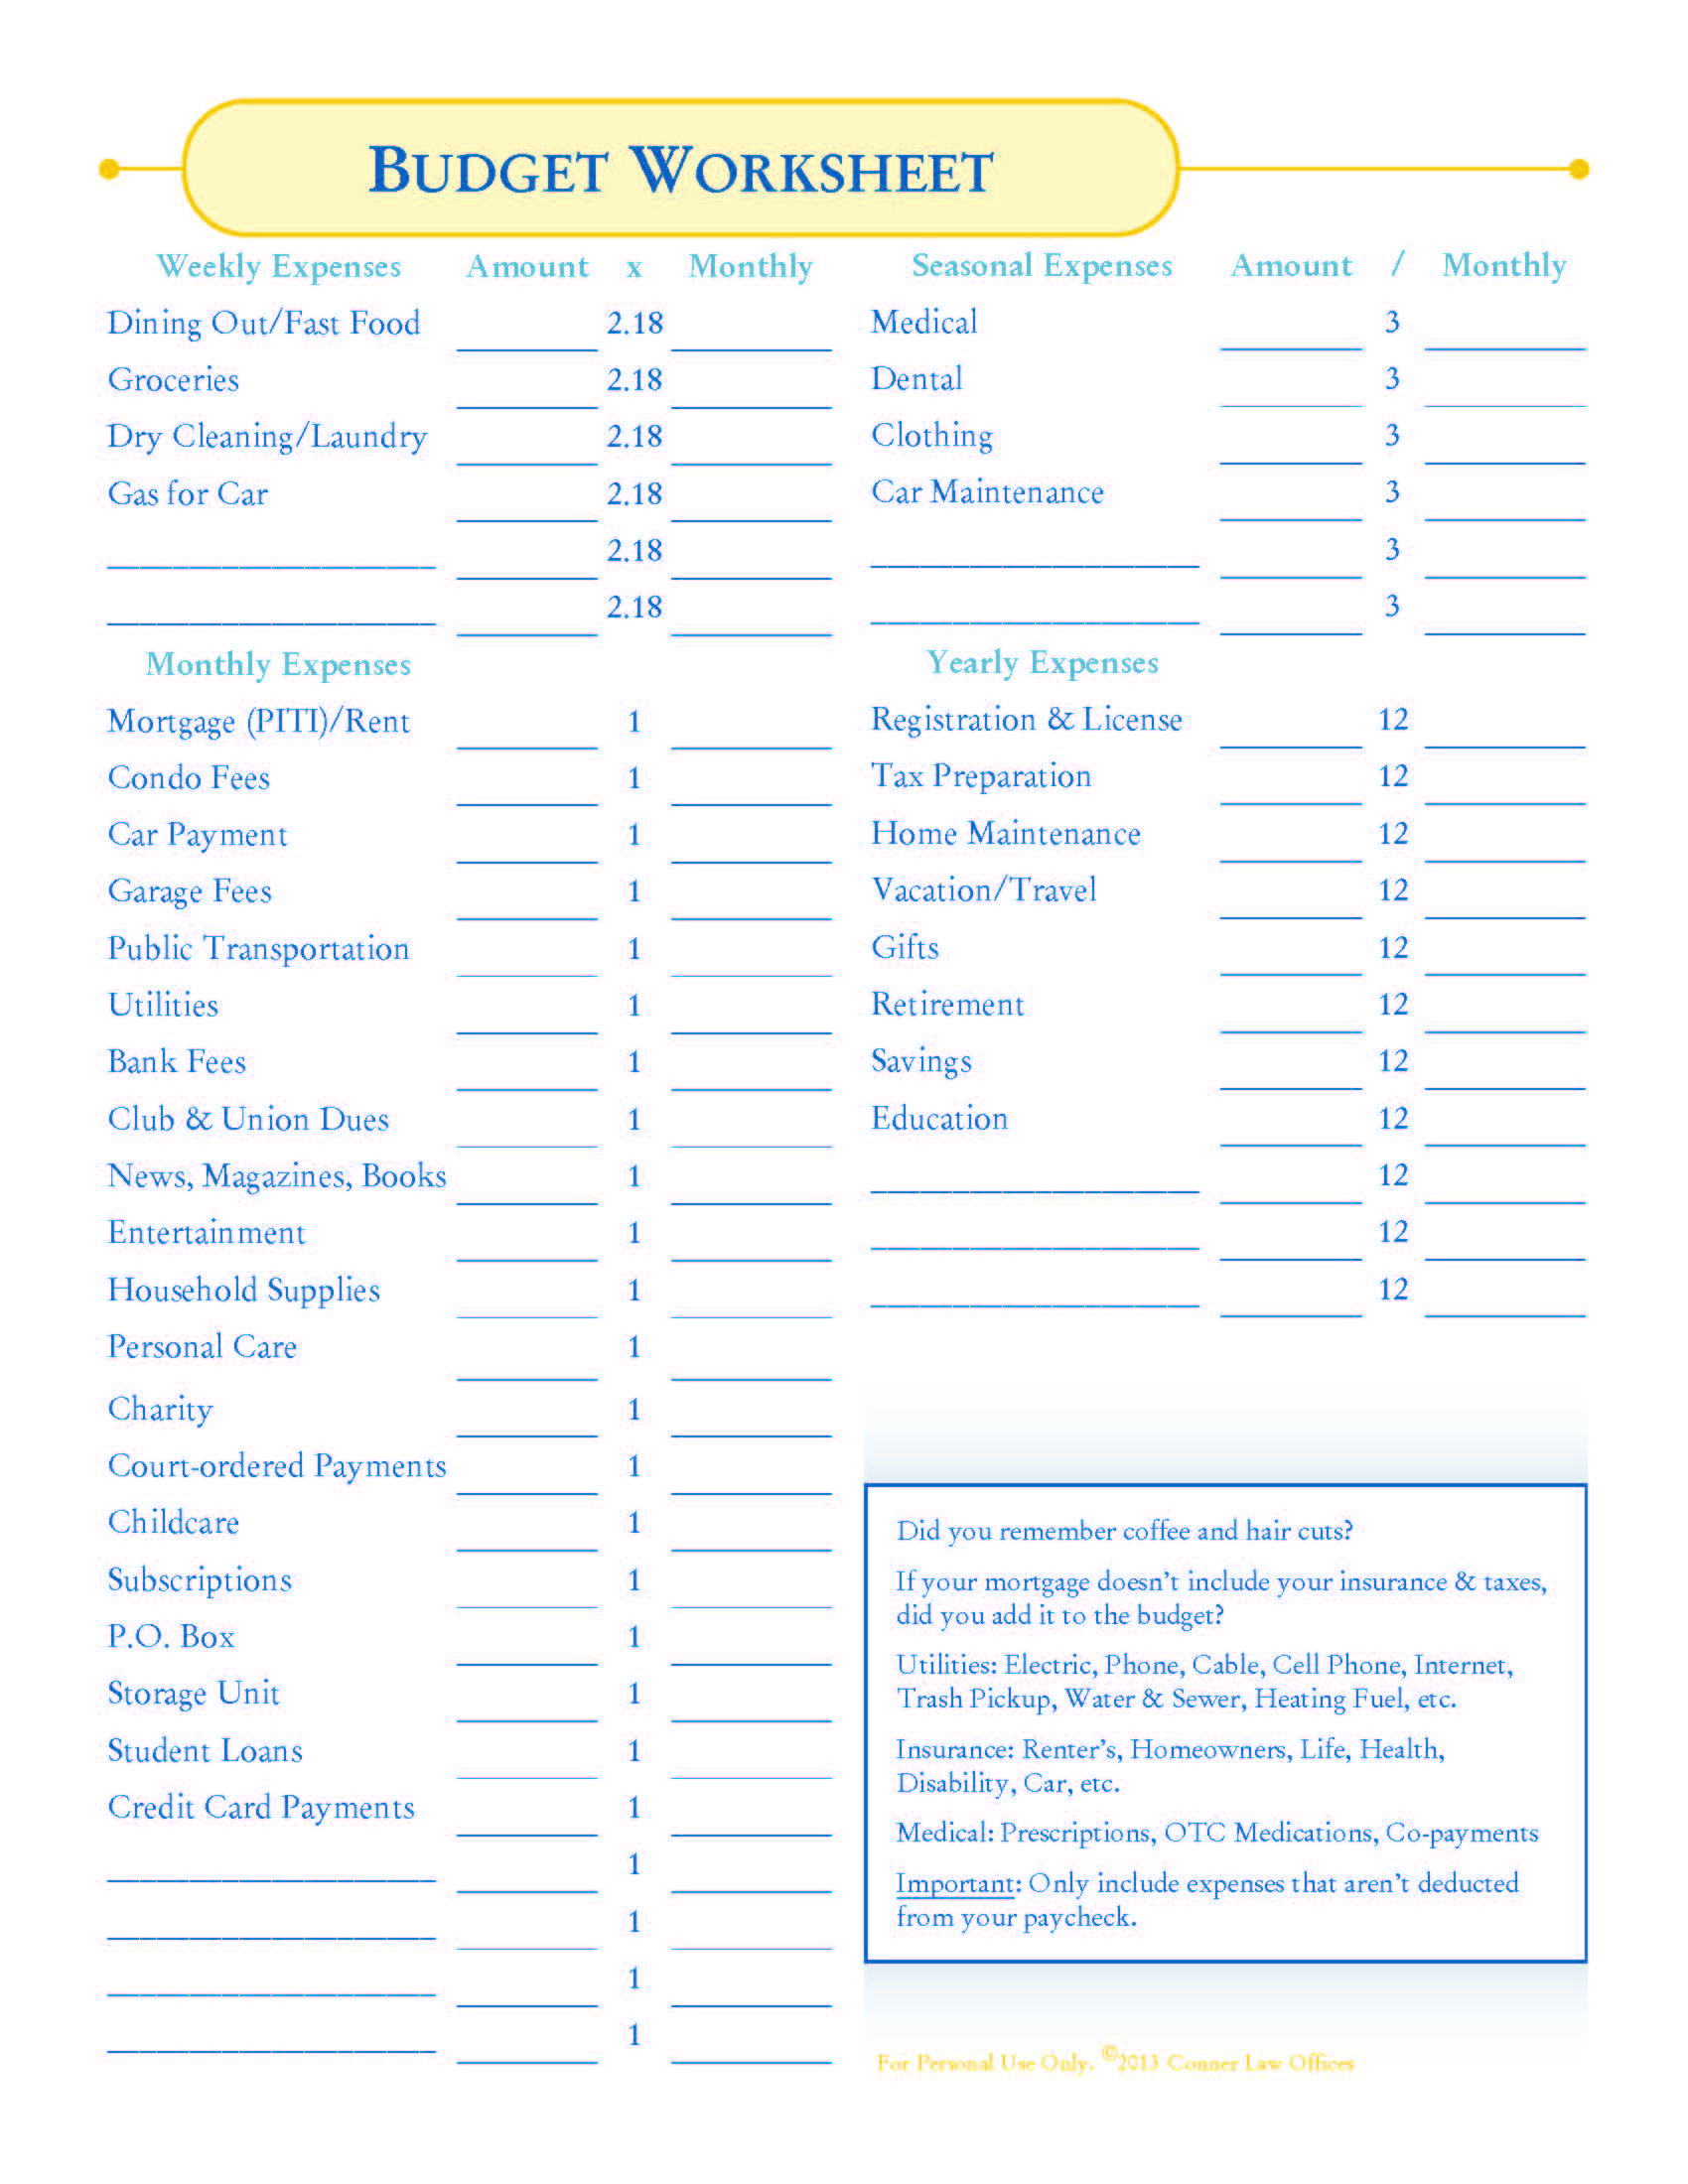 How To Make A #budget + #free Budget Worksheets! | Organizing | Blank Budget Worksheet Printable